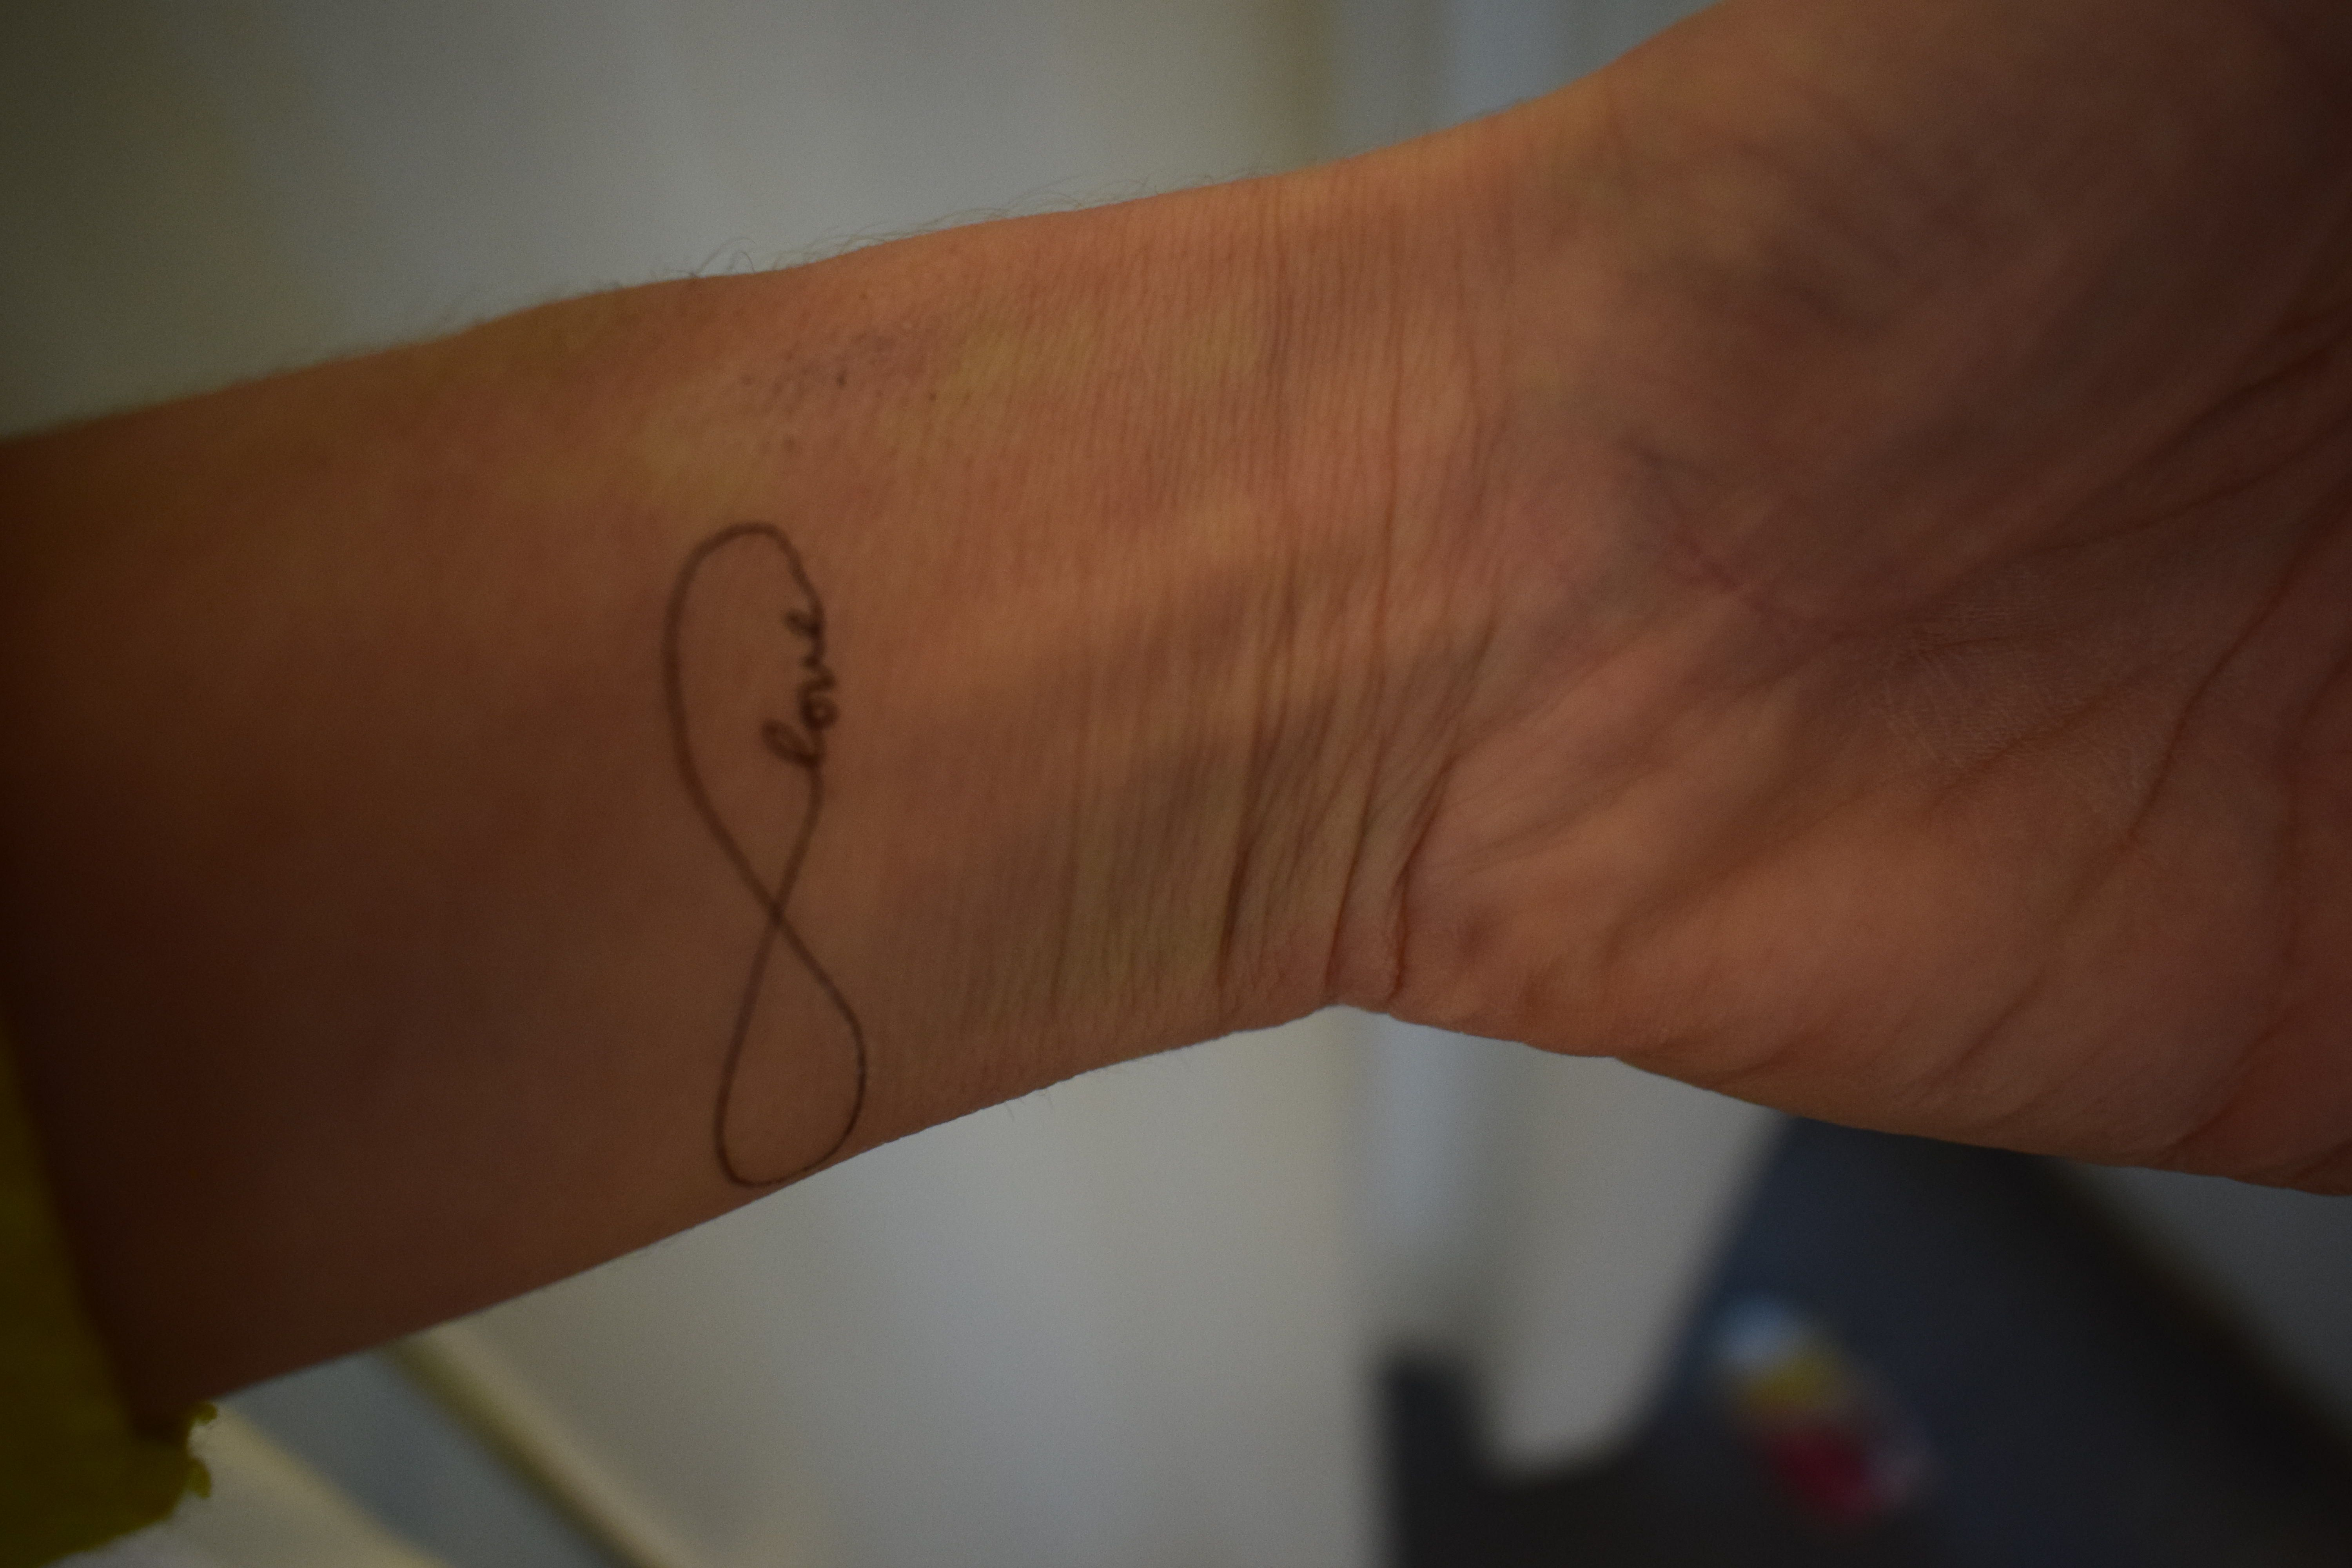 My experience with Fake Tattoos Sweden: http://boiledwords.blogspot.de/2016/11/testing-temporary-tattoos-from-fake.html